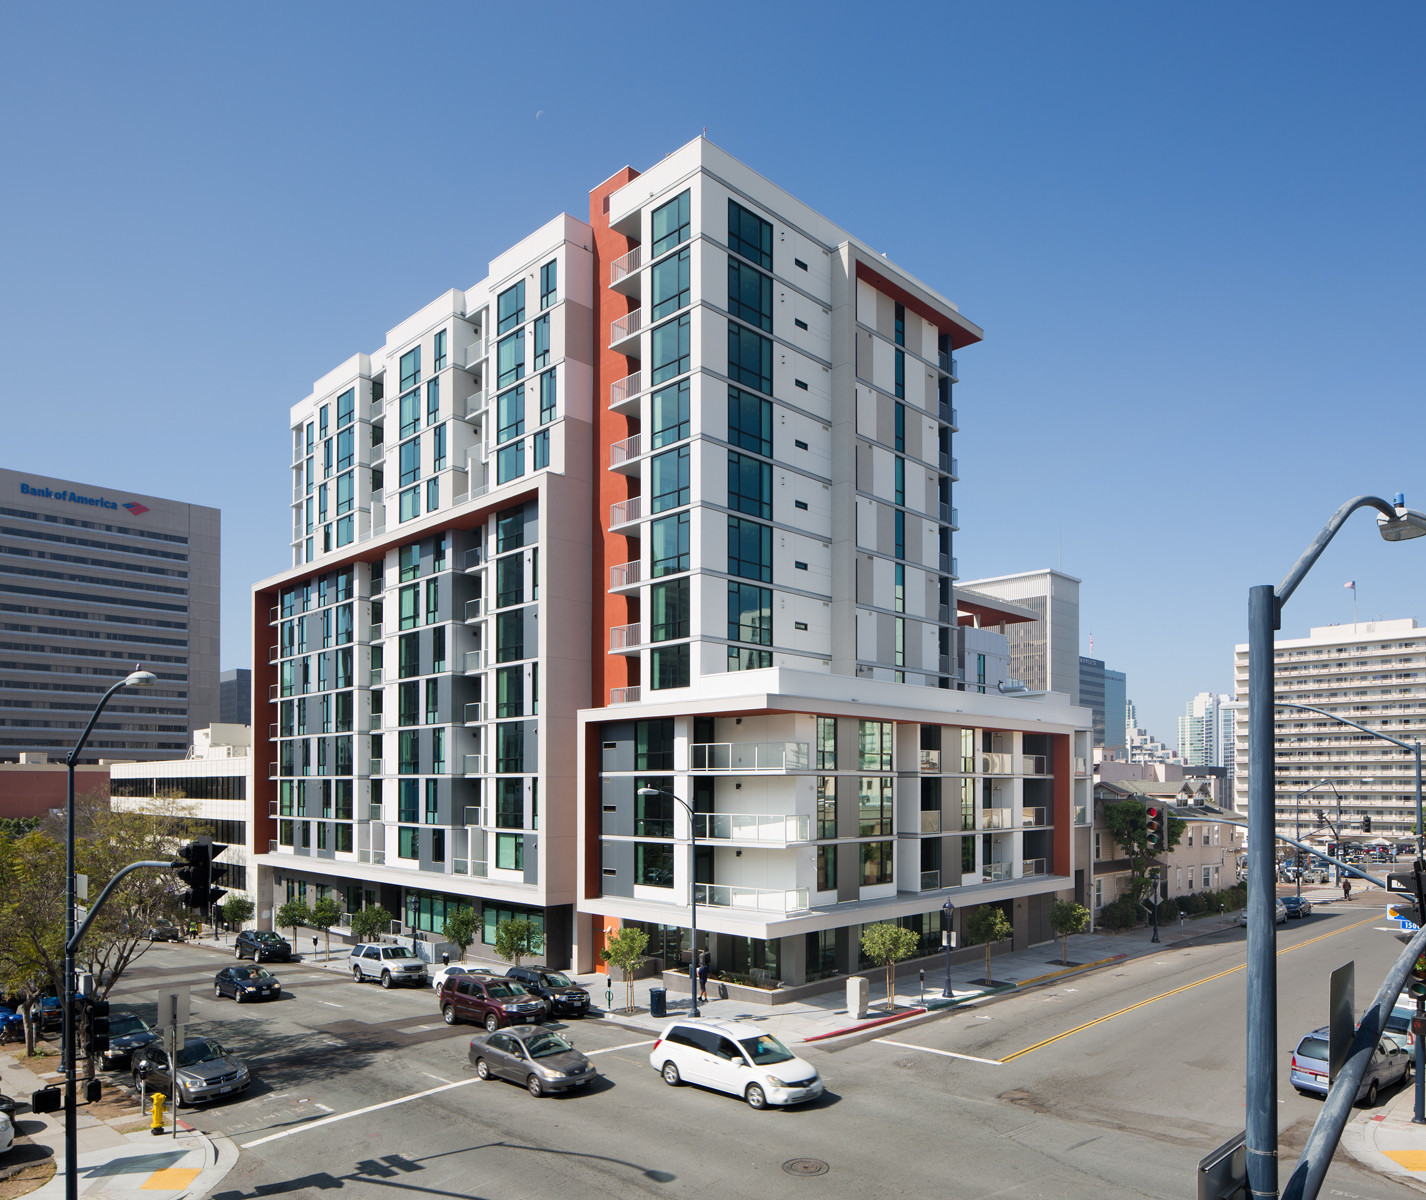 Apartments San Diego For Rent: Living In Downtown San Diego With A Balcony